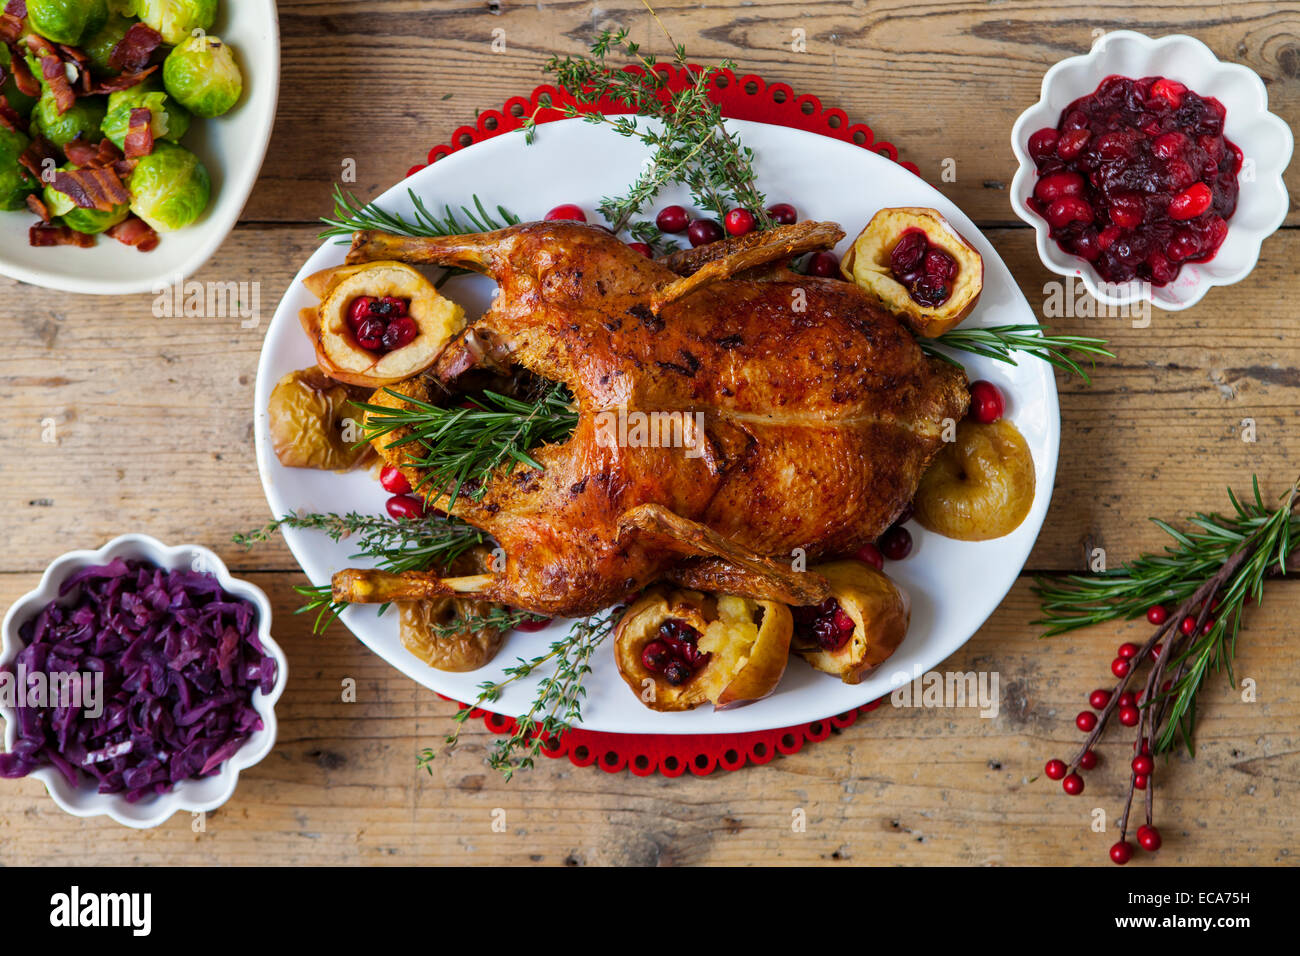 Festive roast duck with apples and cranberries - Stock Image